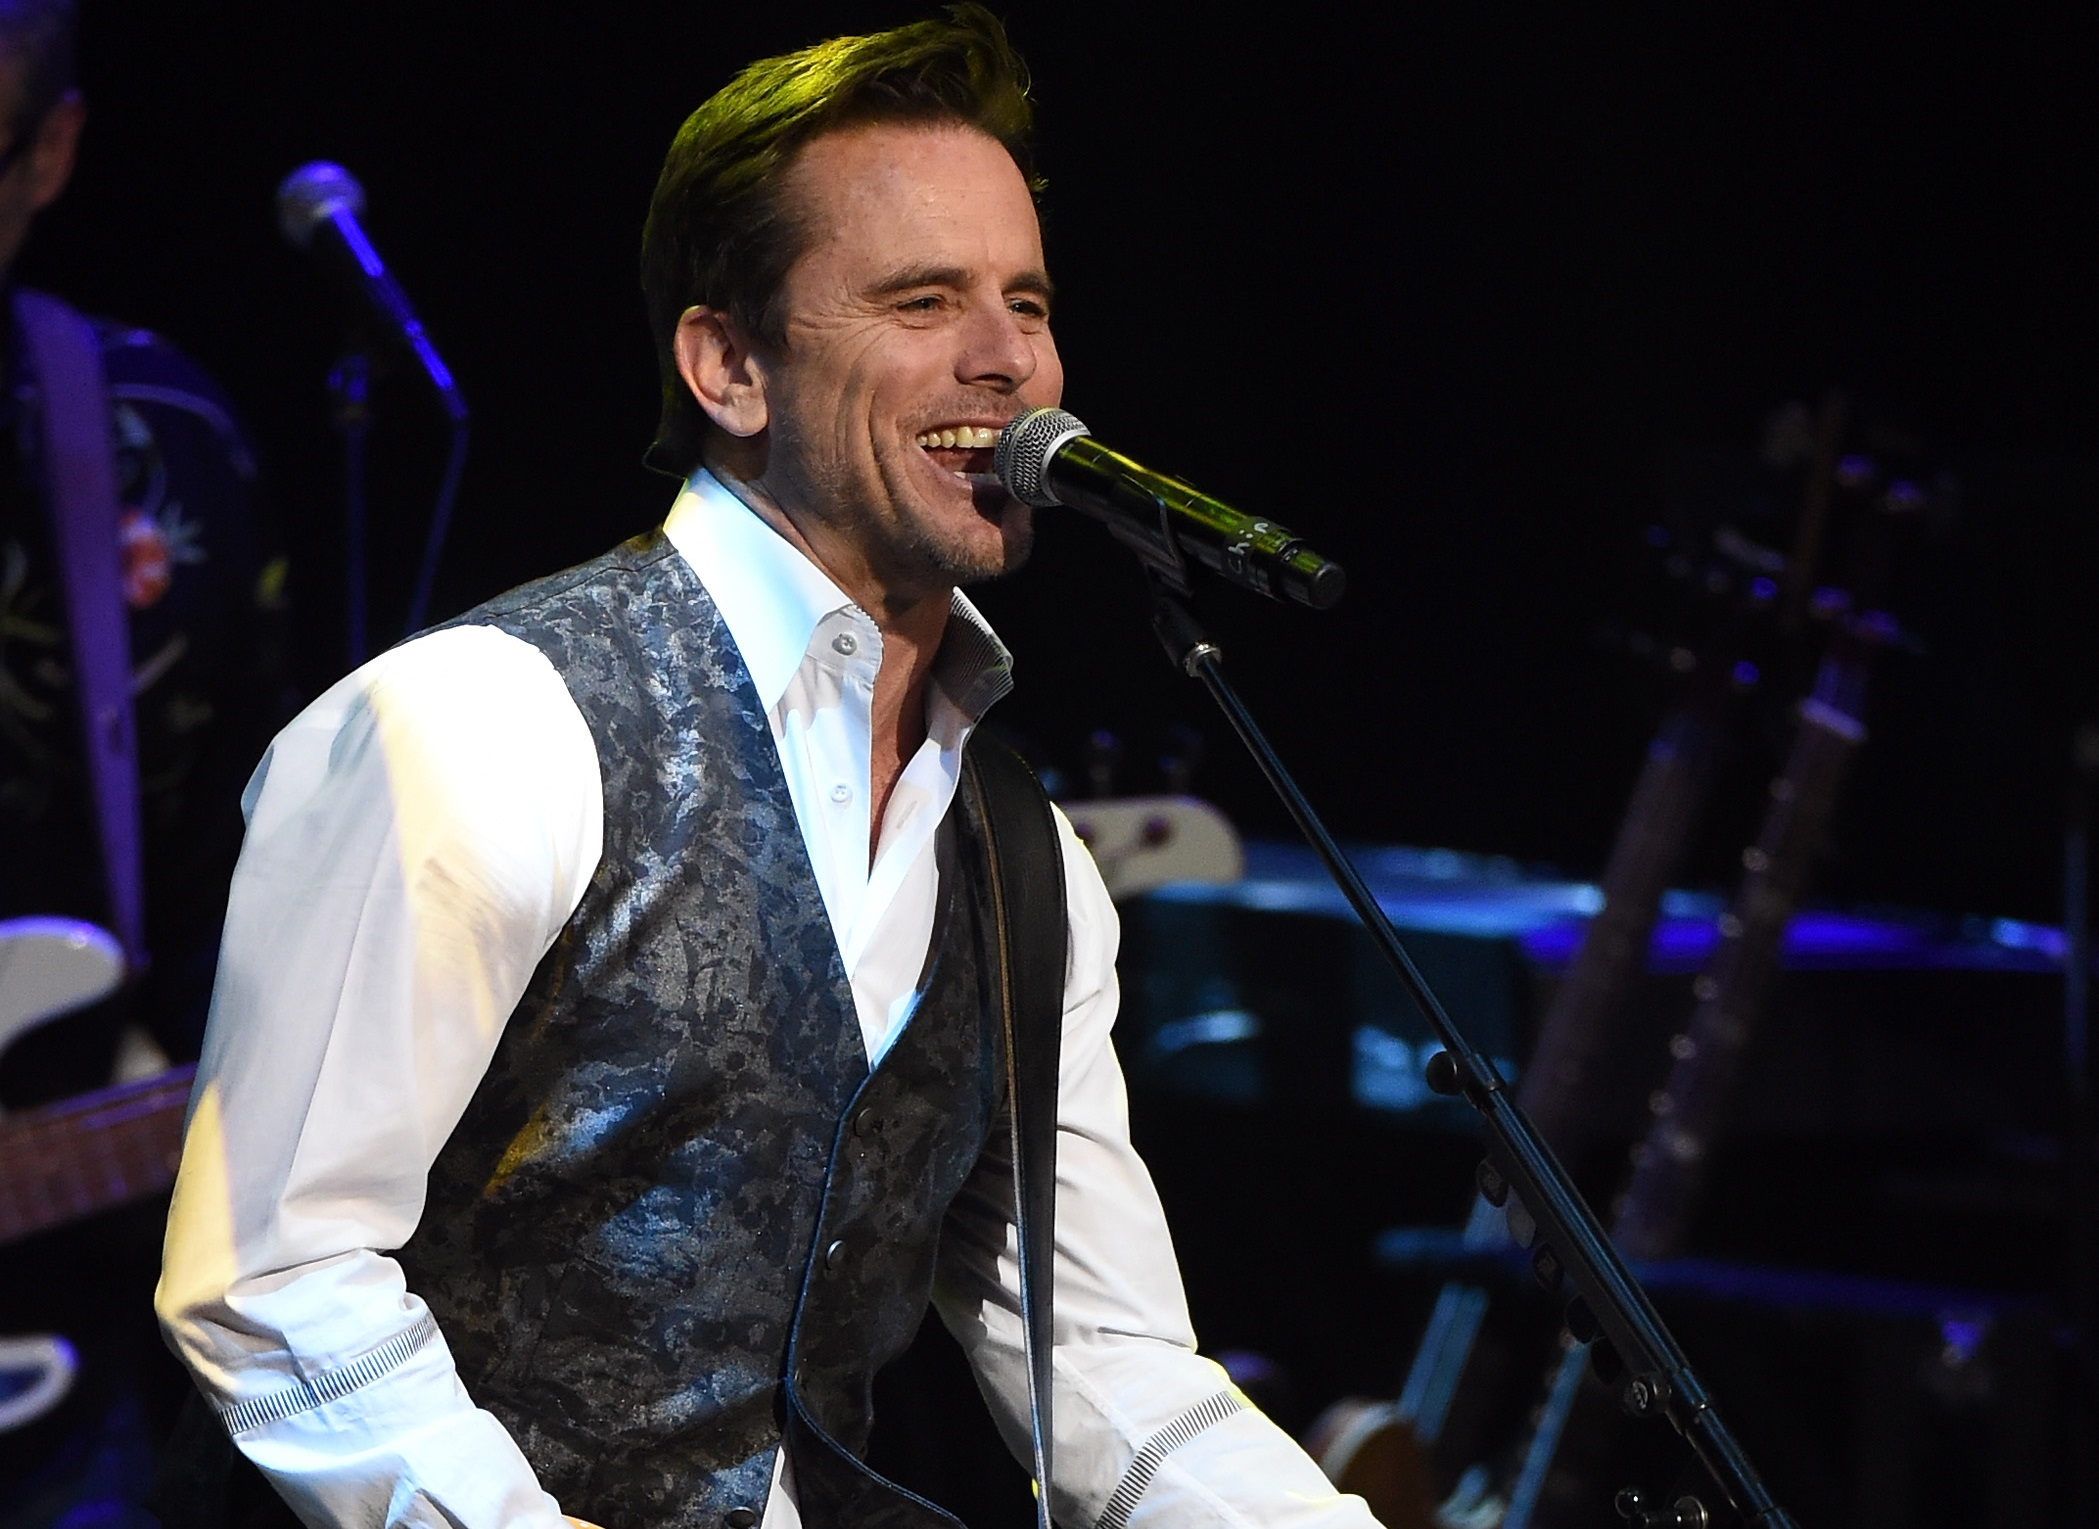 Charles esten to release new music everysinglefriday sounds like